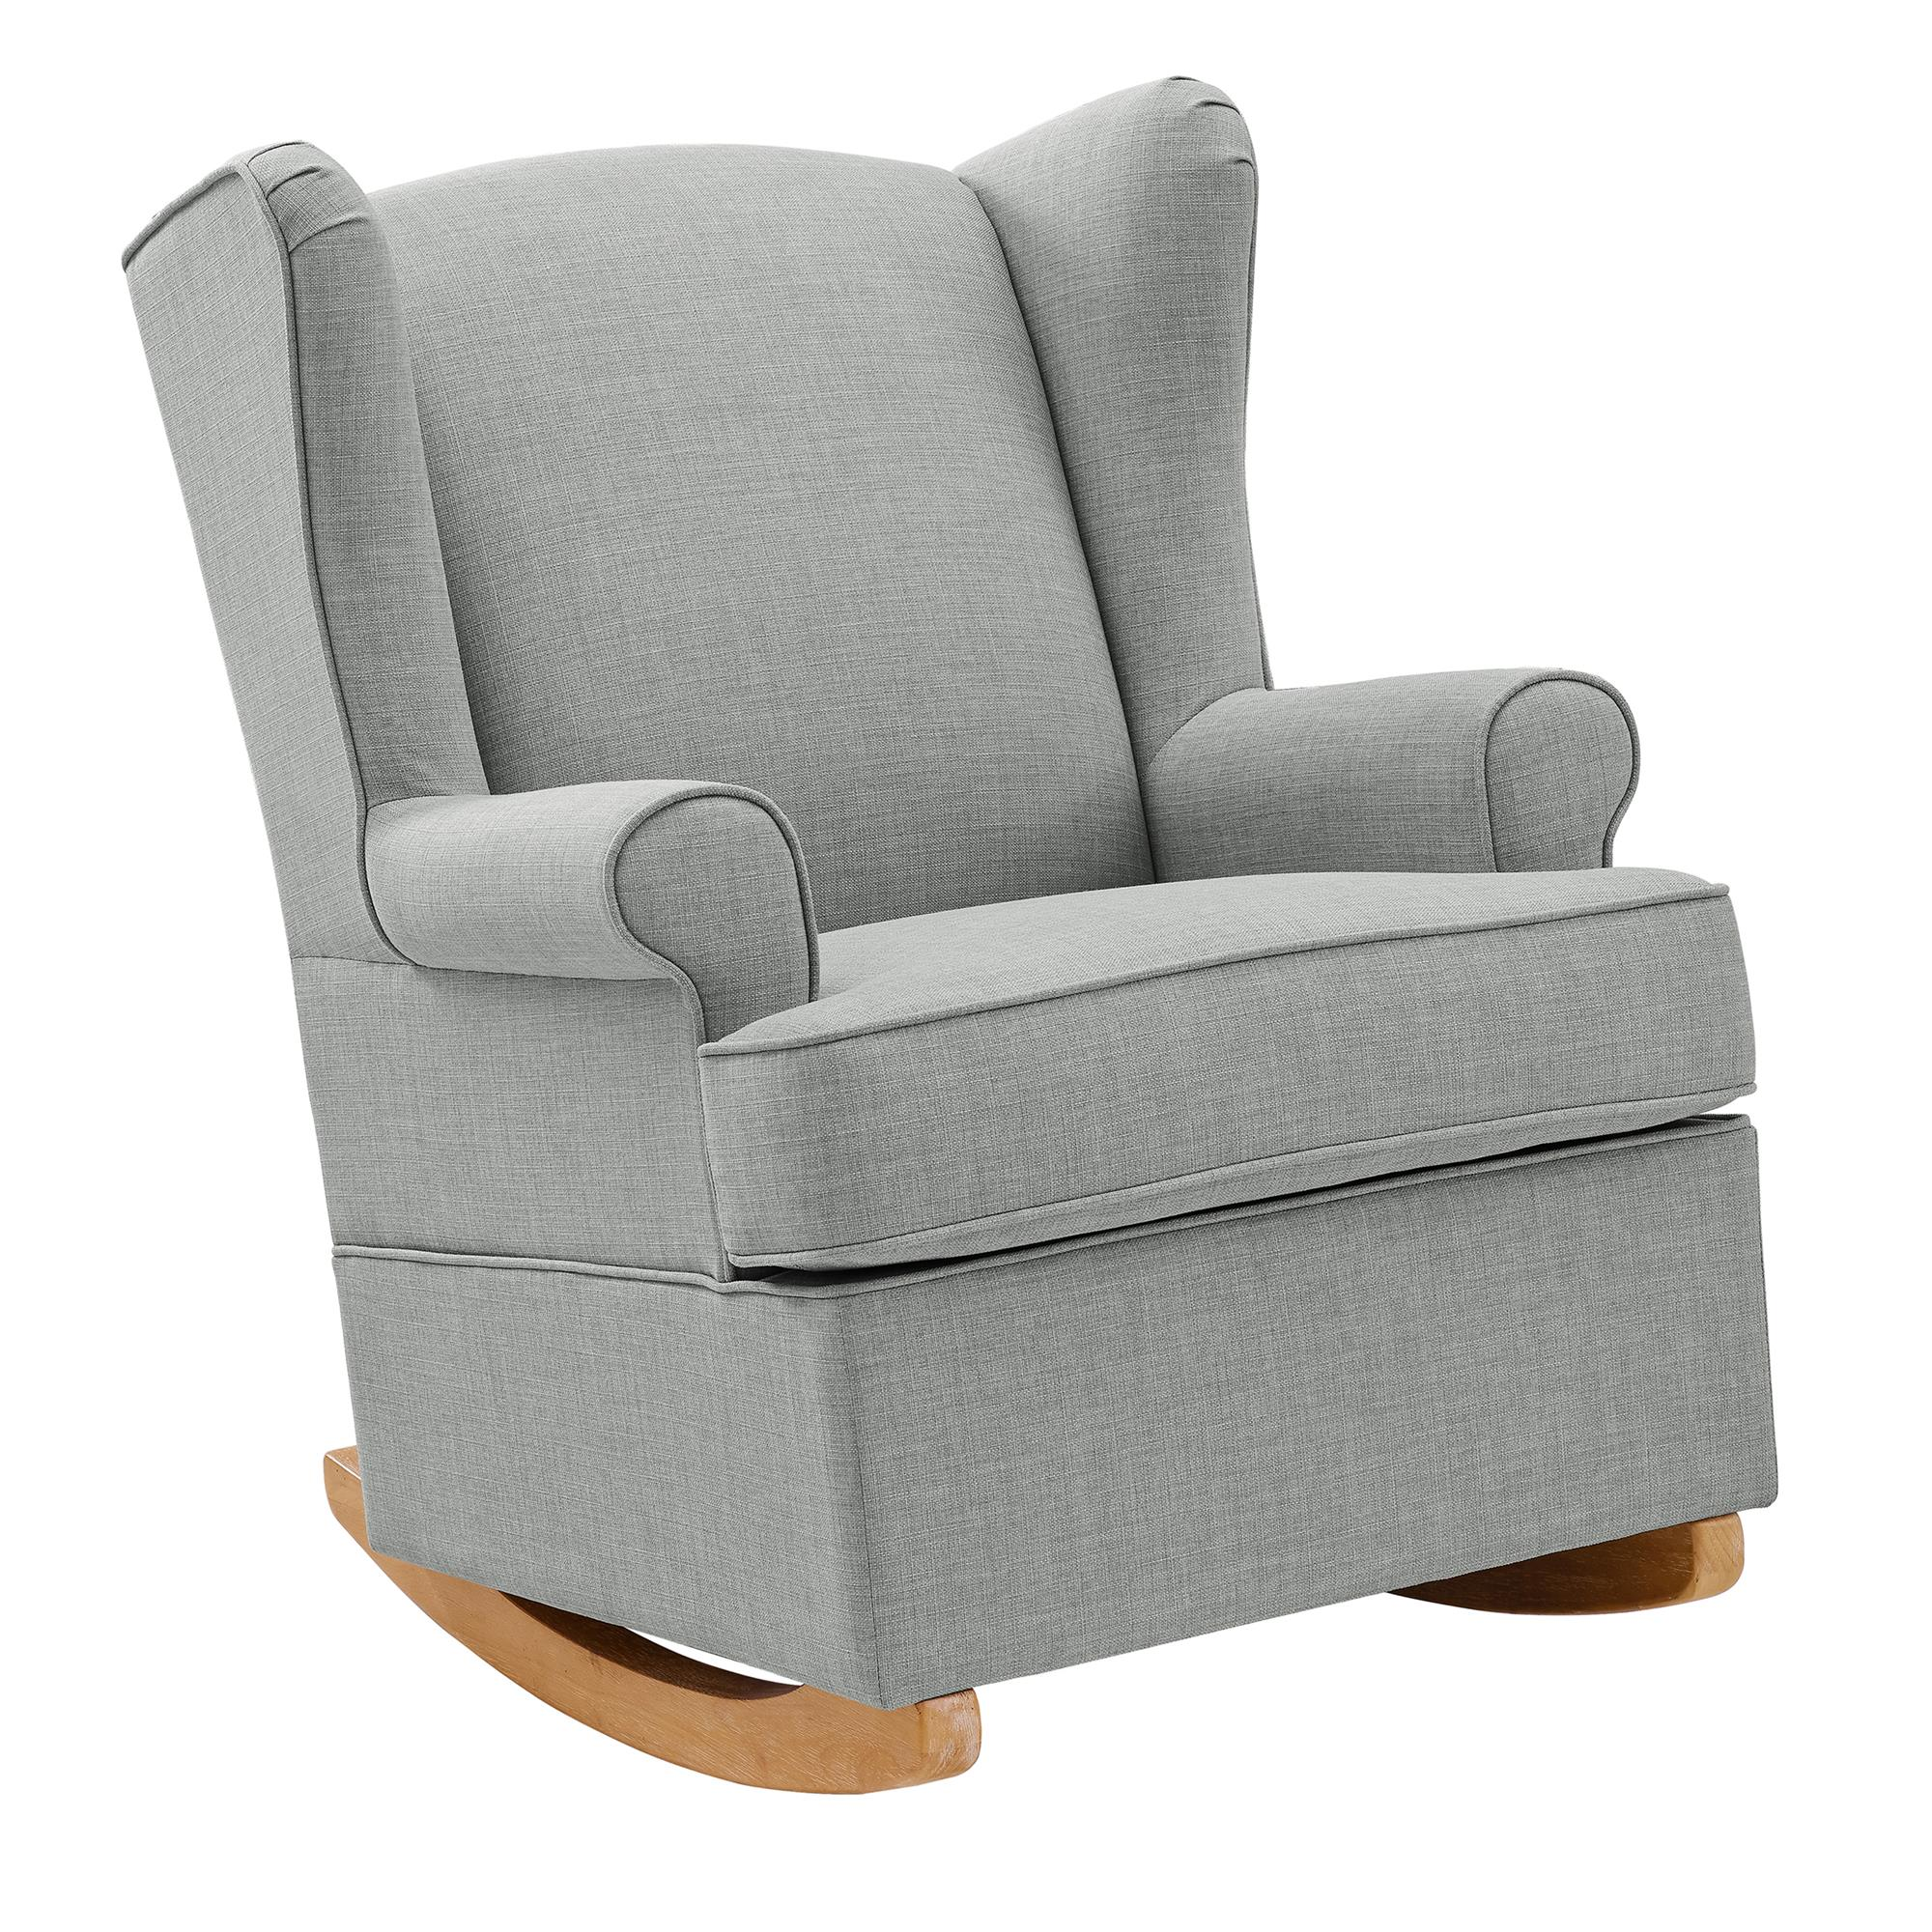 Baby Relax Wainwright Wingback Convertible Rocker, Multiple Colors